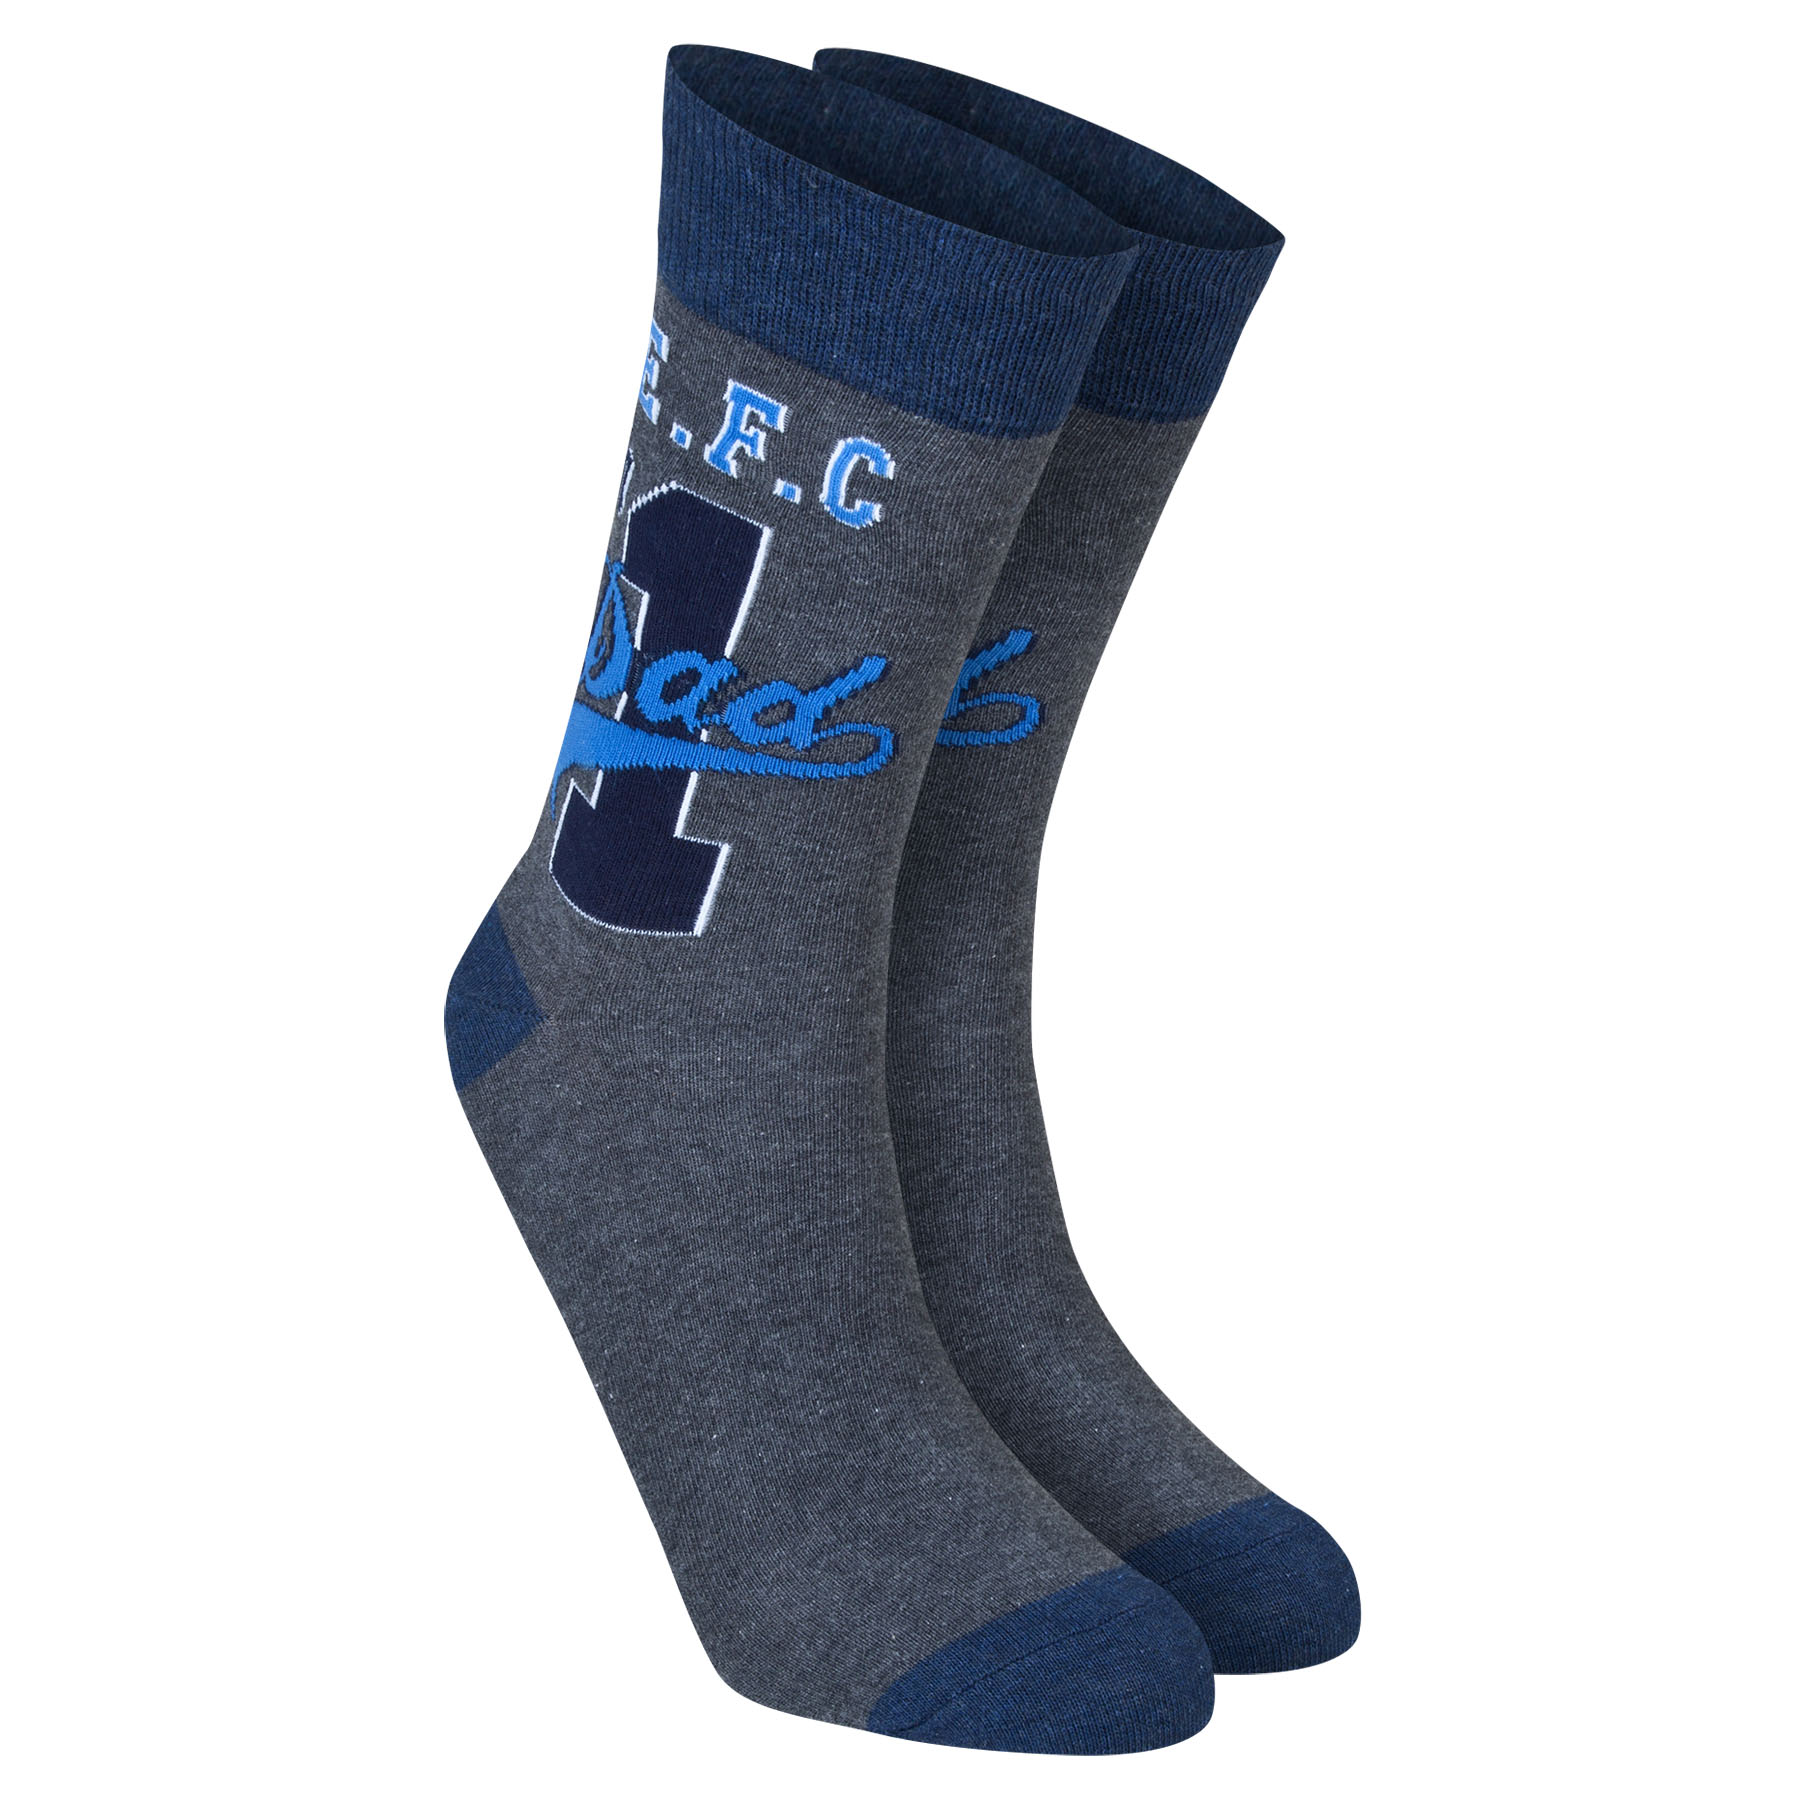 Everton Dad Socks - Charcoal Marl - Mens